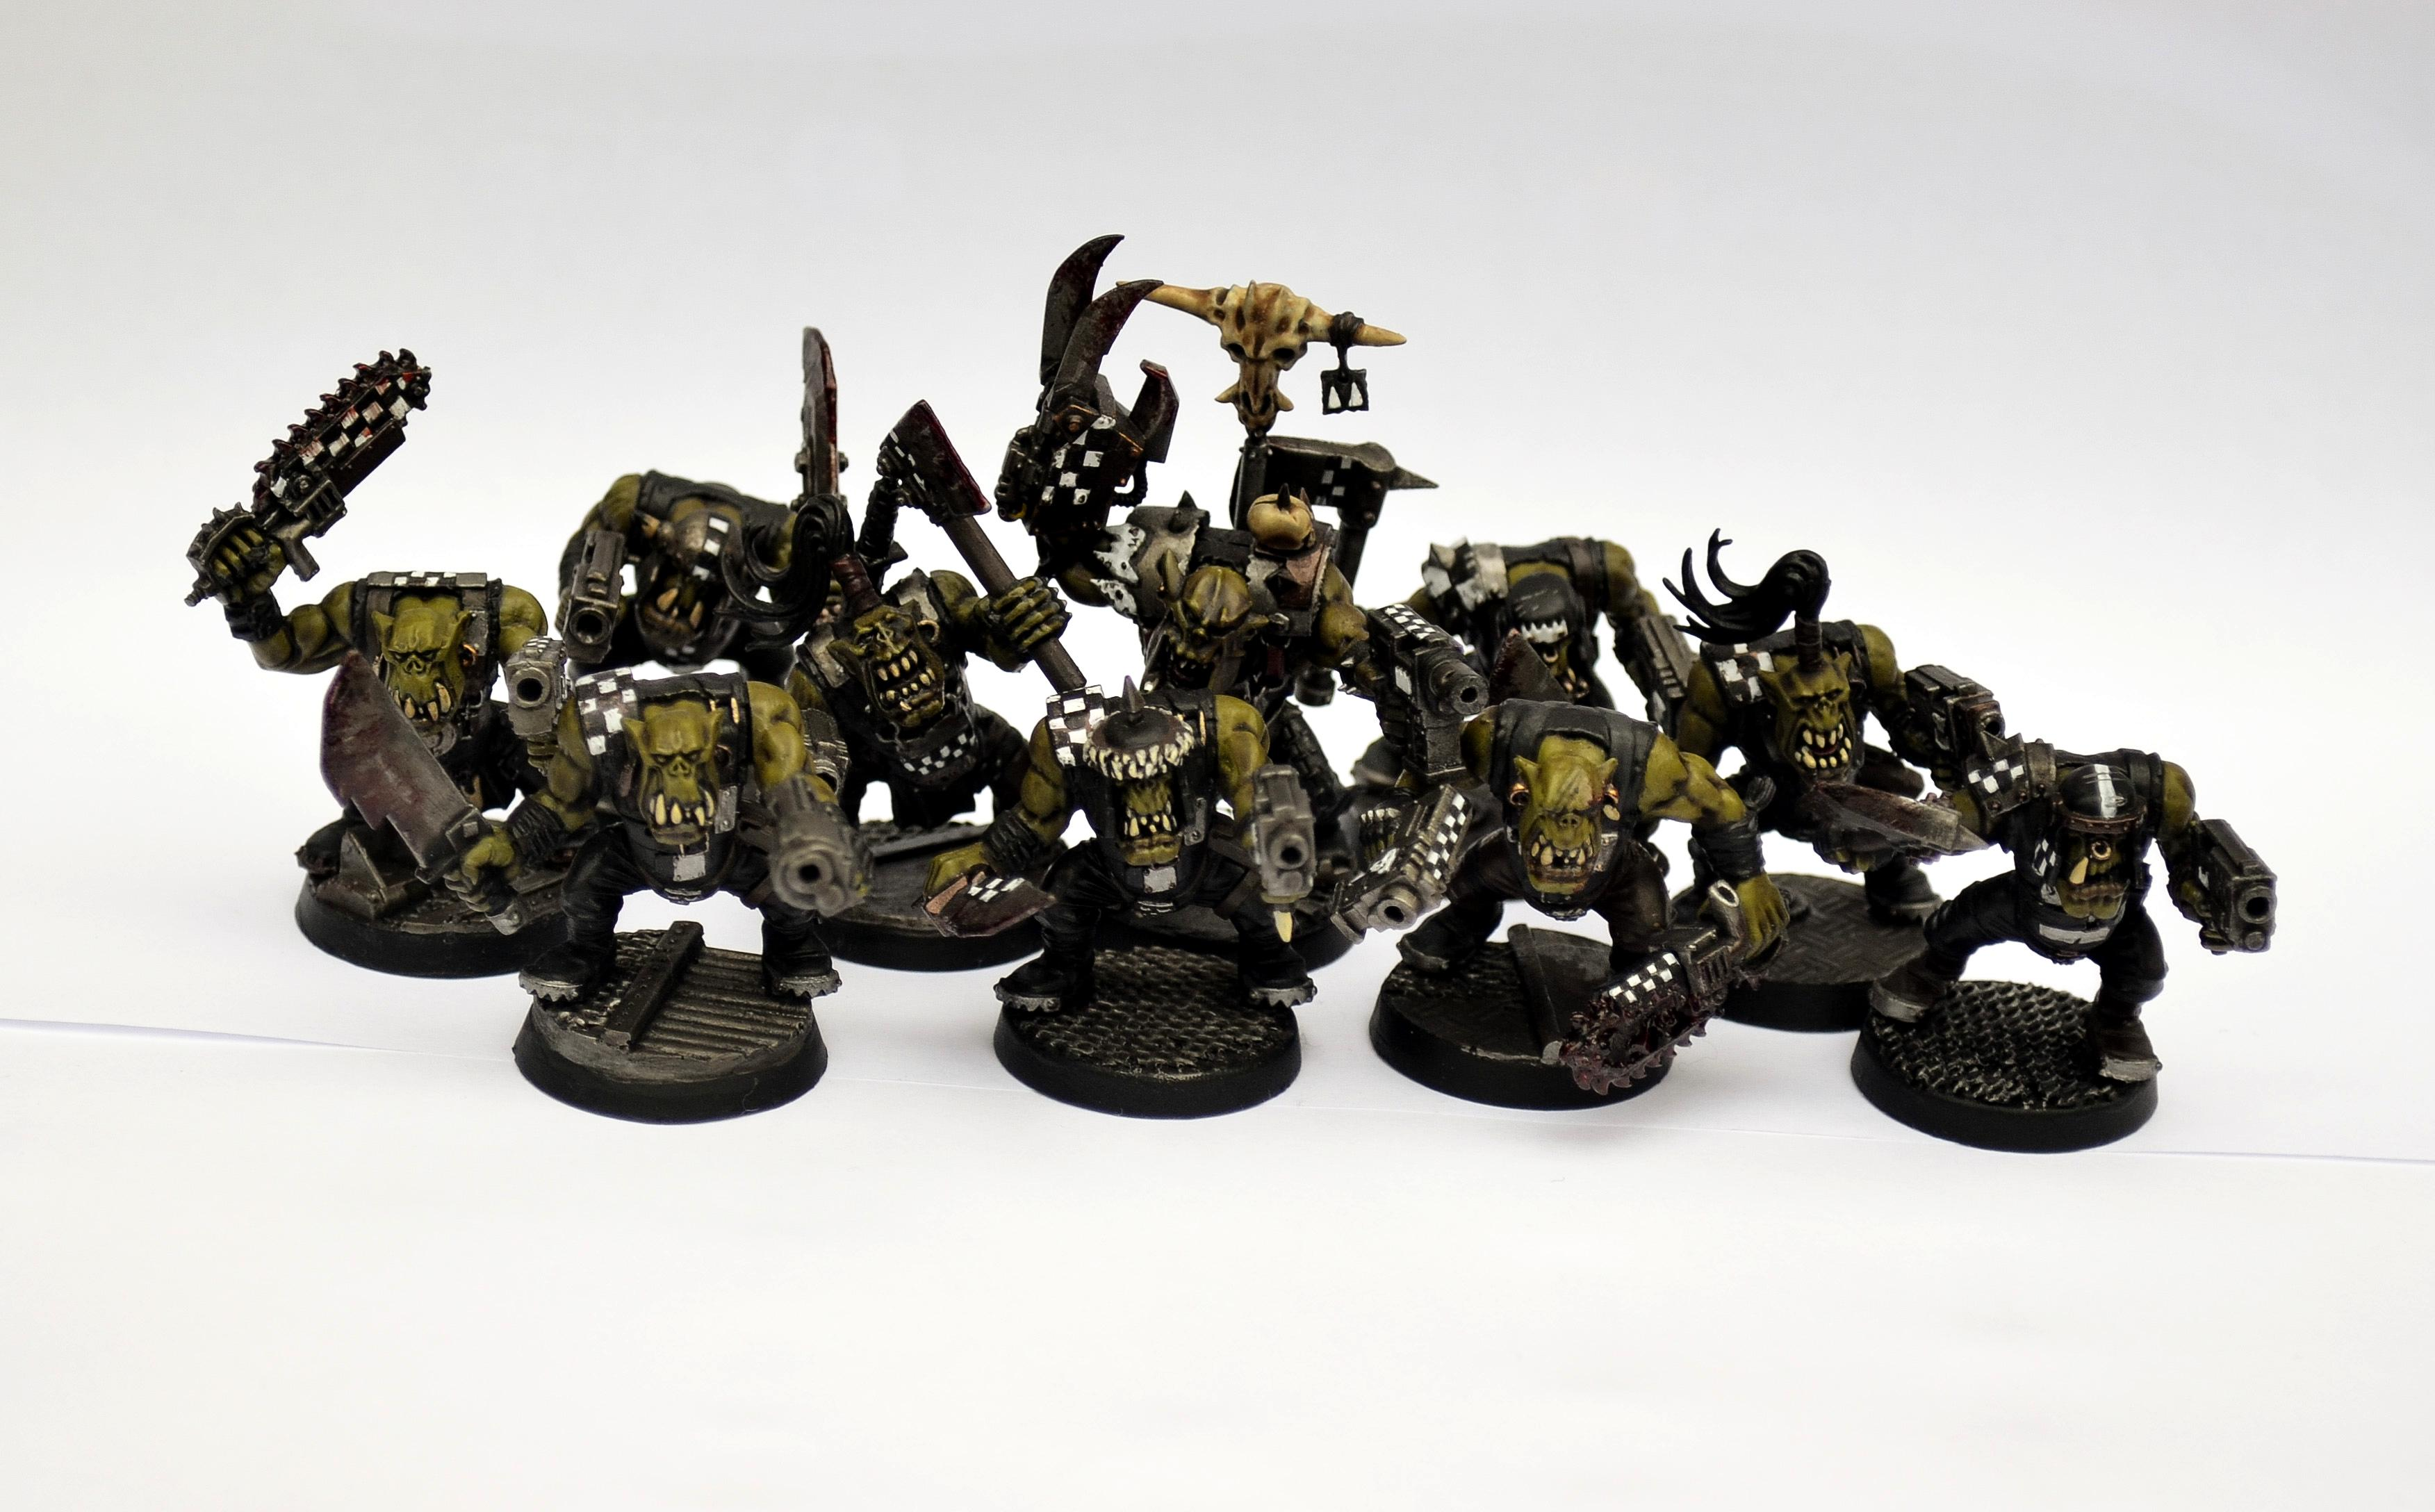 Blood, Boy, Brutal, Burna Boyz, Checks, Conversion, Dark, Dirty, Dust, Dusty, Goffs, Grime, Hive World, Industrial, Mean, Mob, Nob, Orks, Power Klaw, Realism, Realistic, Rust, Rusty, Slugga Boyz, Waaagh, Waaagh Gorbash, Warboss, White